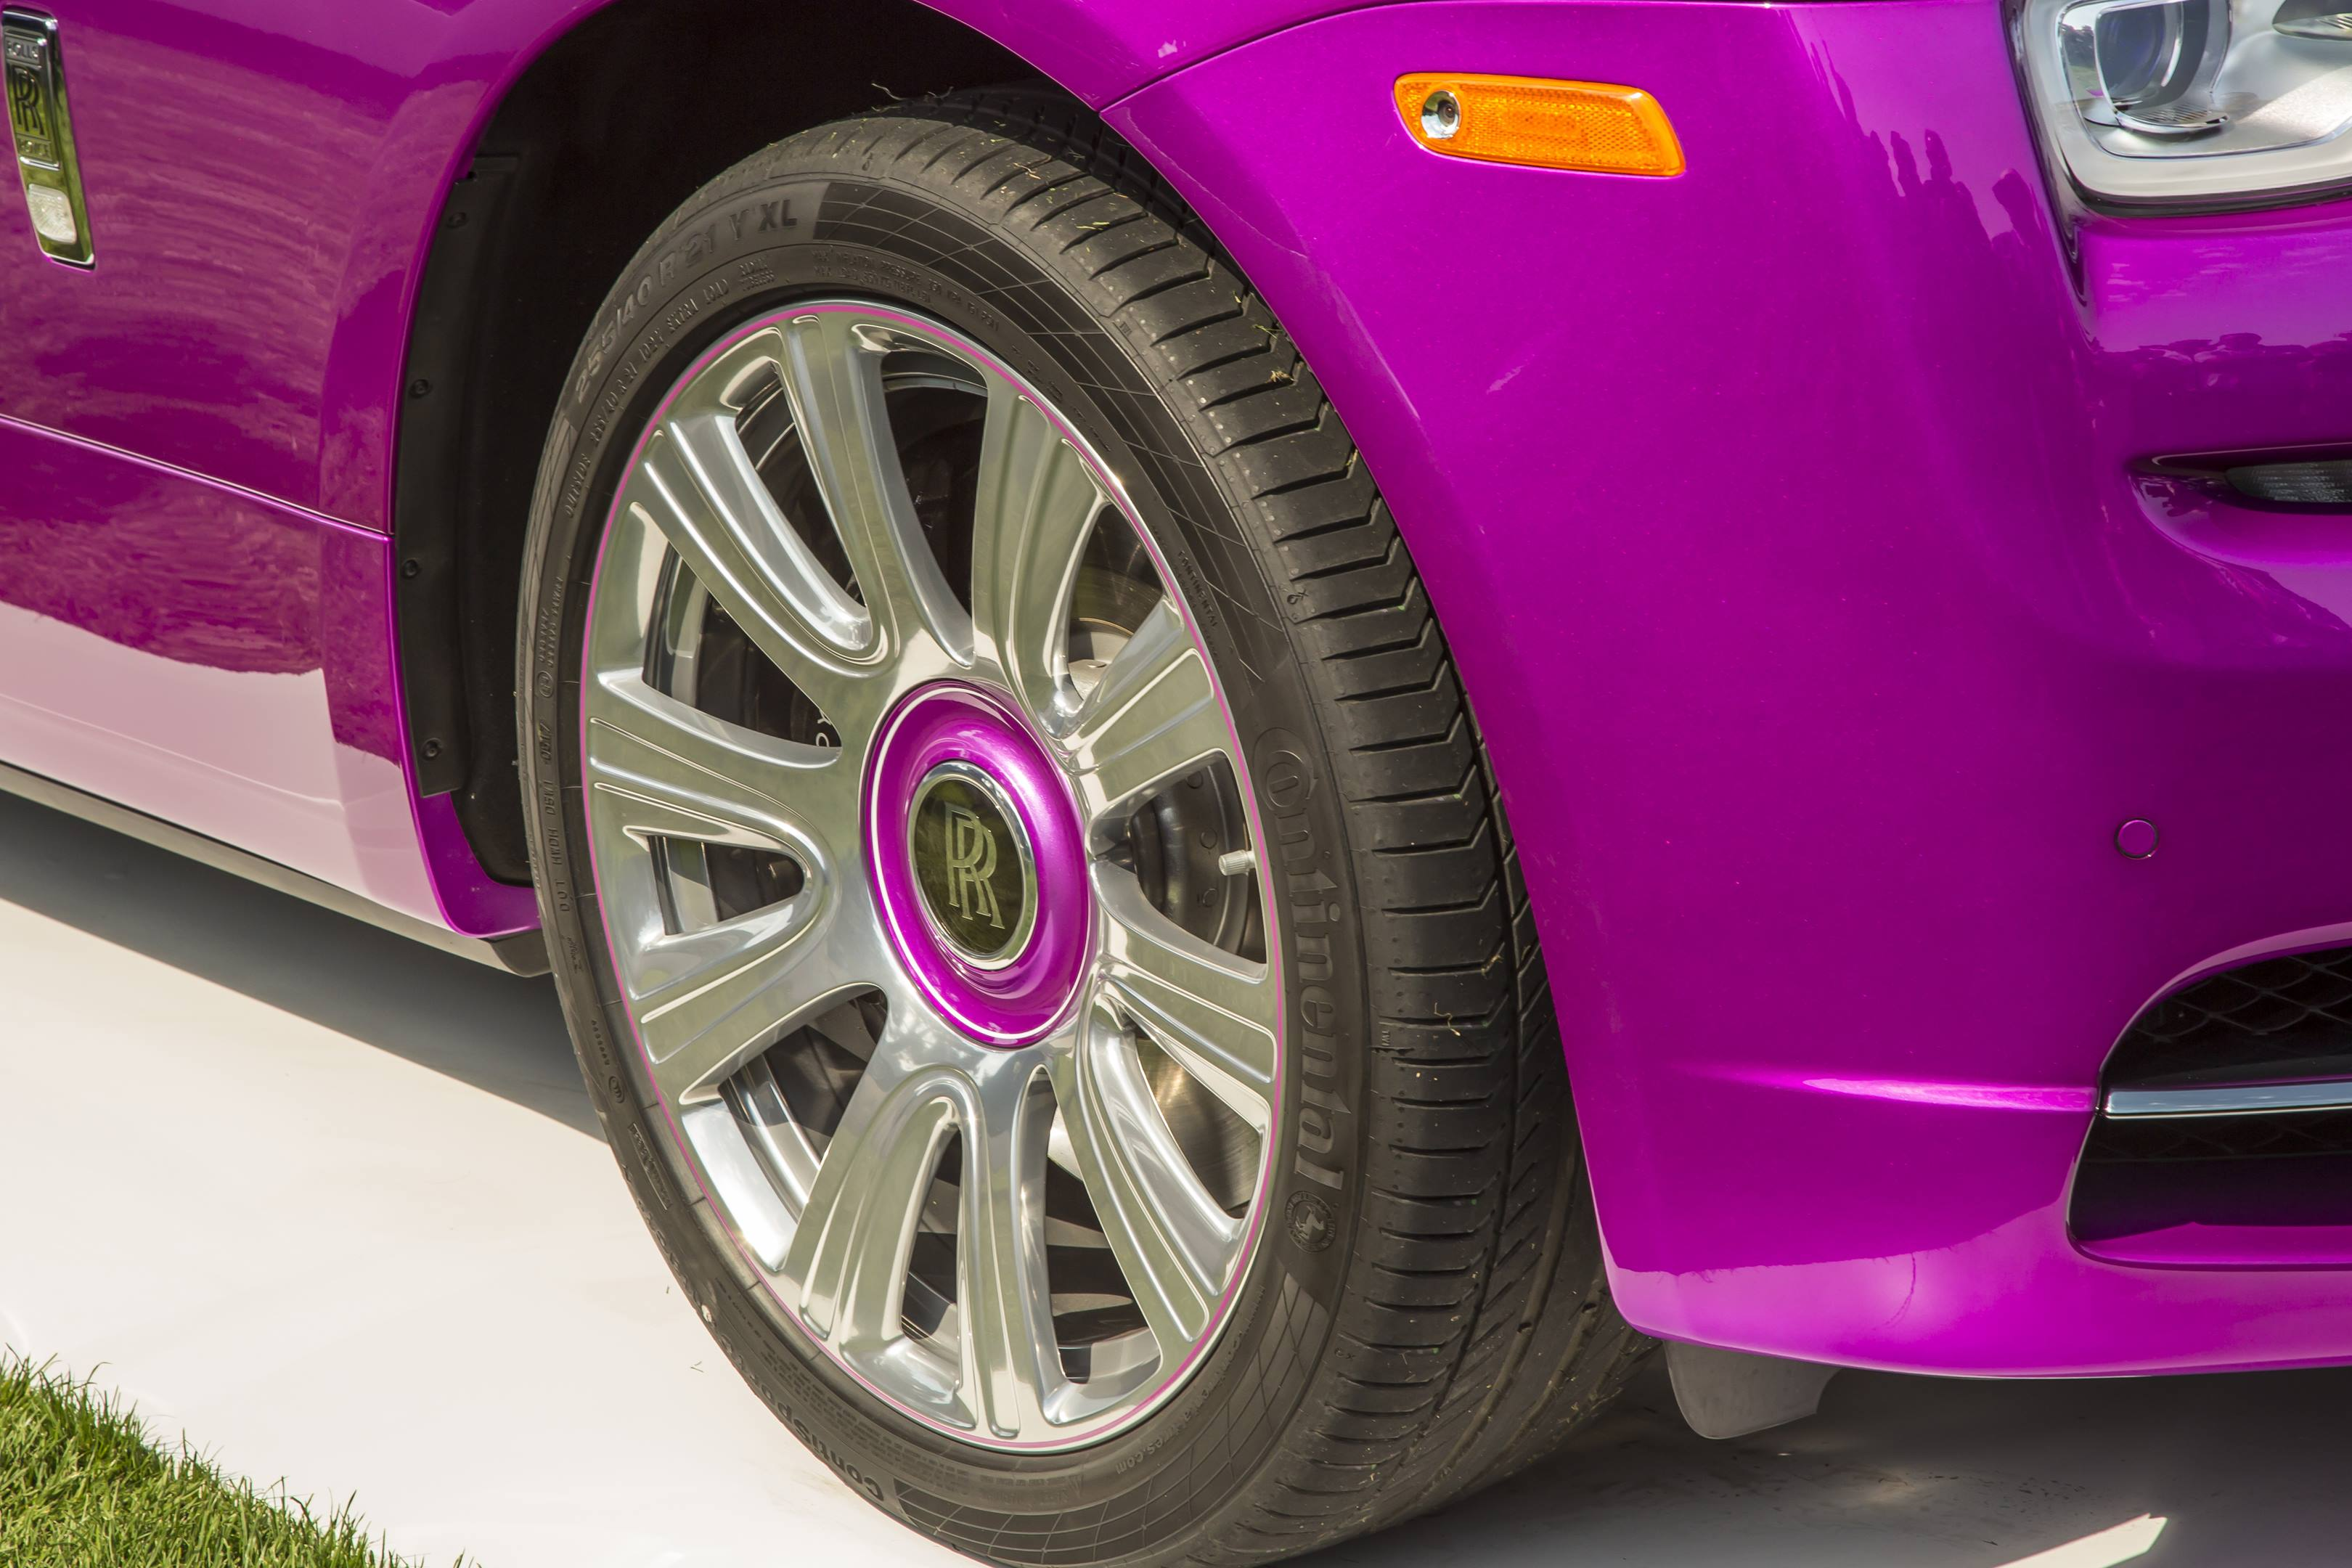 Michael Fux's Rolls-Royce Dawn convertible wheel detail